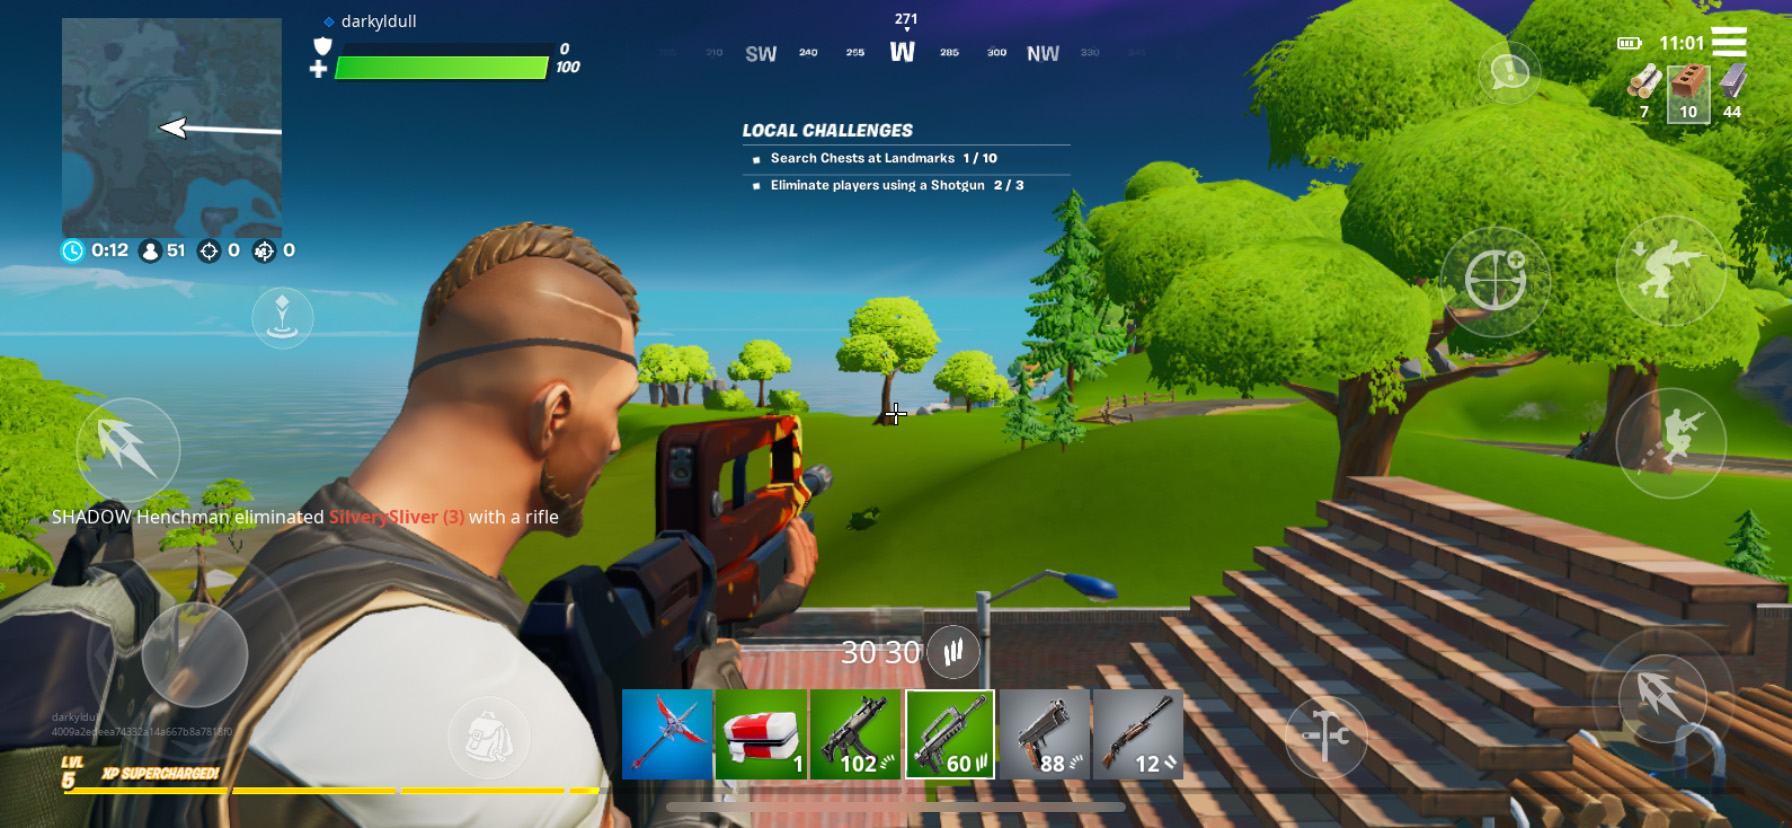 Fortnite Mobile - A Guide on the Different Weapon Types